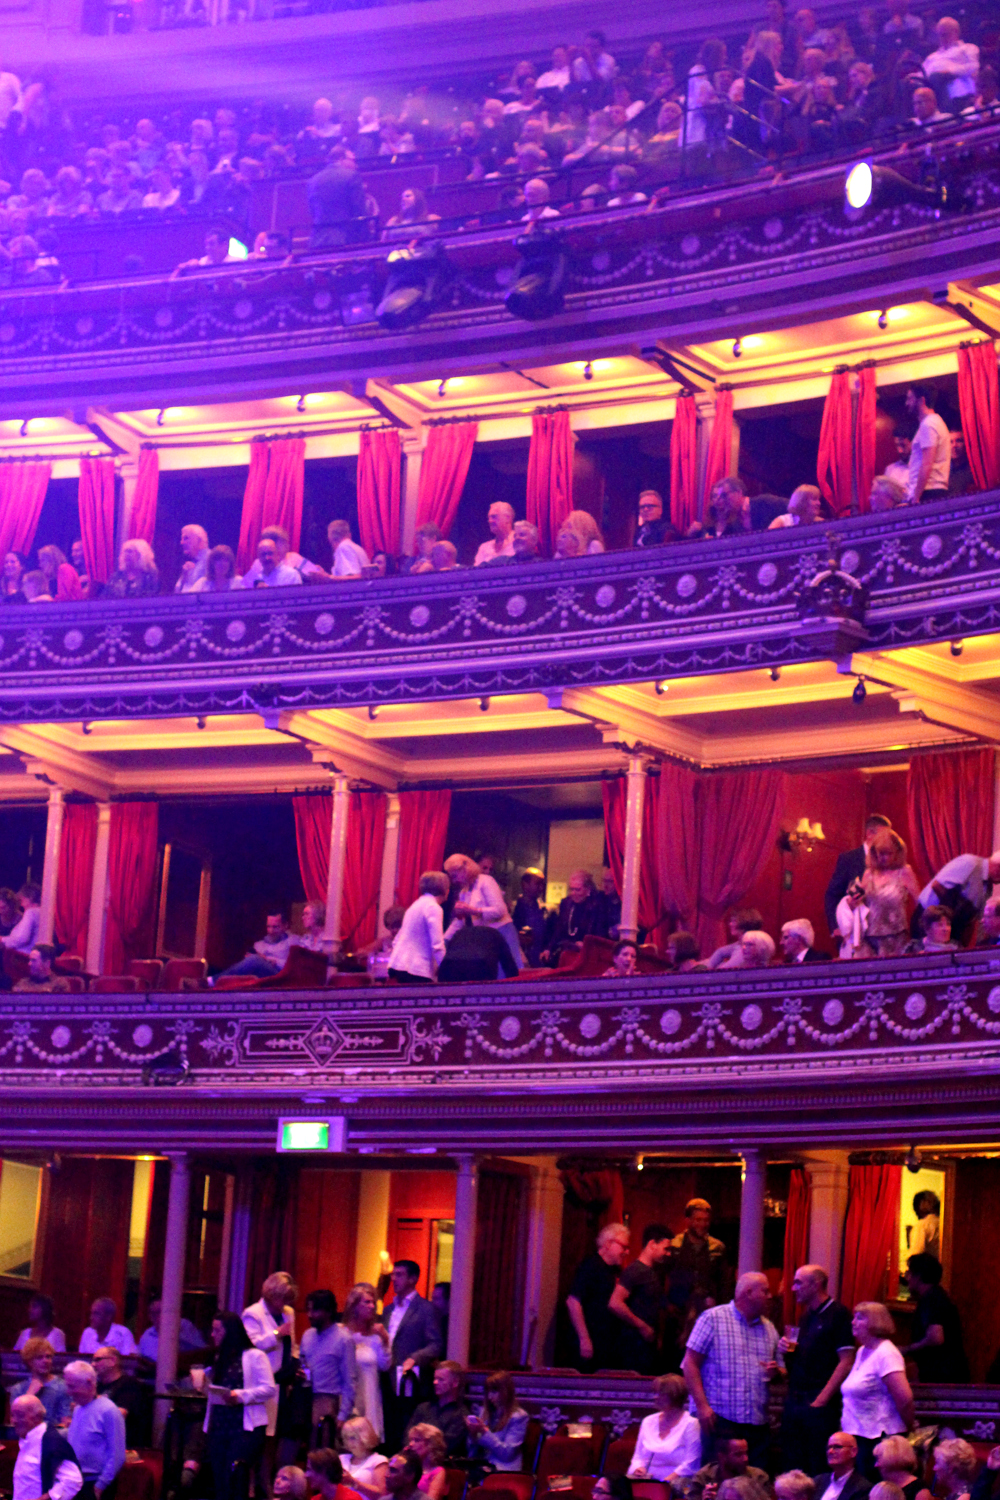 Proms crowd at the Royal Albert Hall - UK style & culture blog